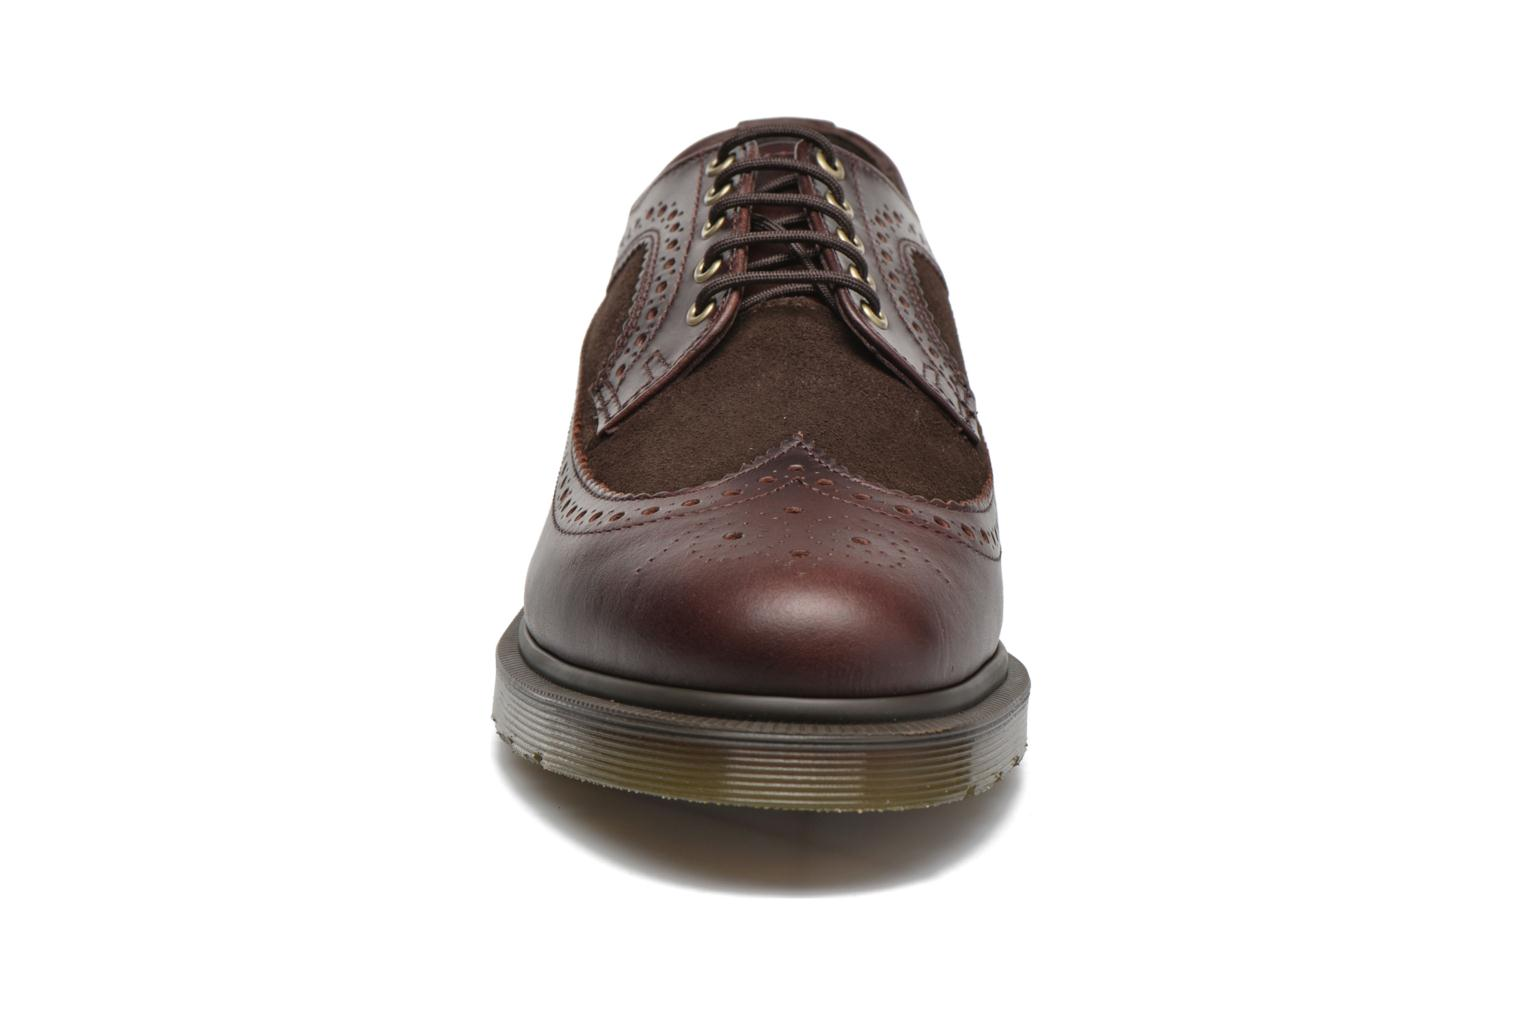 3989 Dark Brown